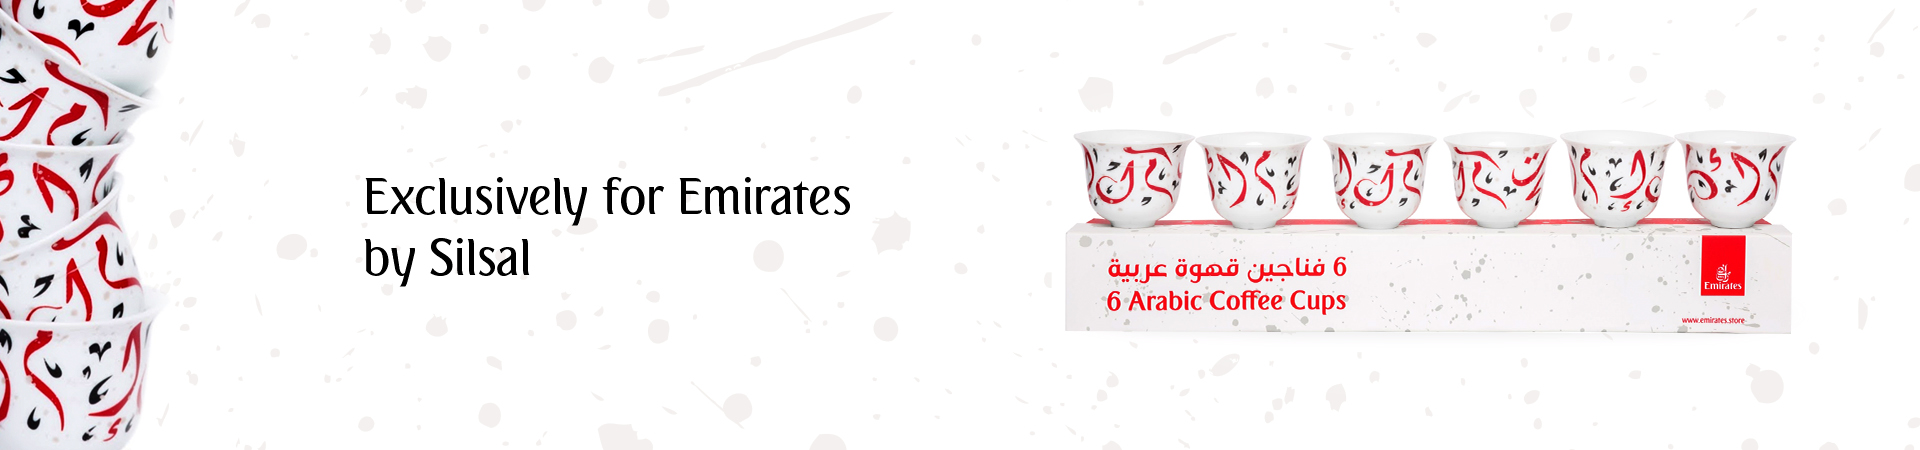 https://www.emirates.store/eos-store/accessories/mugs-tumblers/arabic-coffee-cups-in-white%2c-red-and-black/c-24/c-167/p-4601